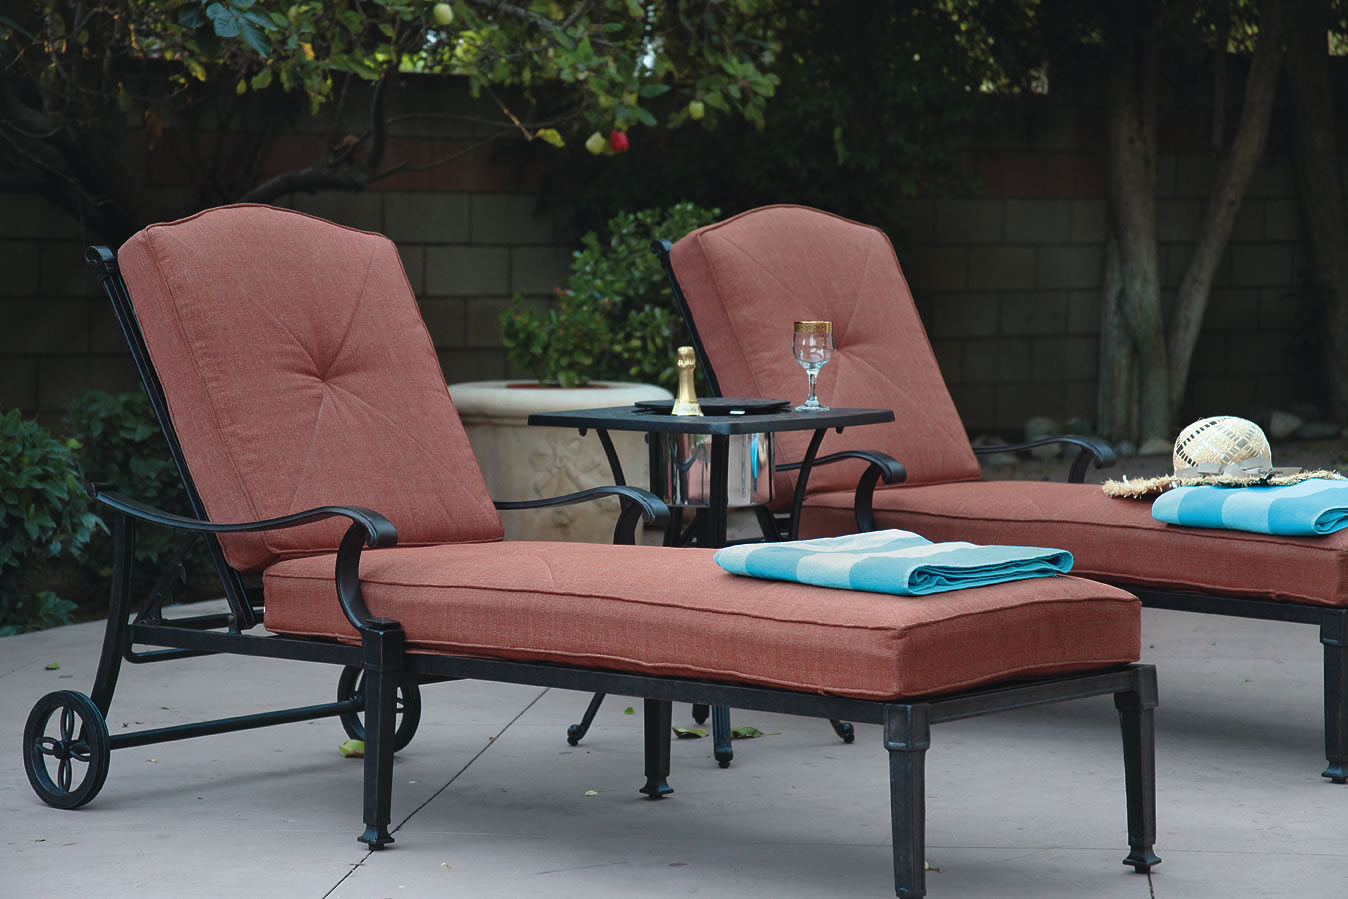 Patio furniture chaise lounge cast aluminum charleston for Aluminum chaise lounges